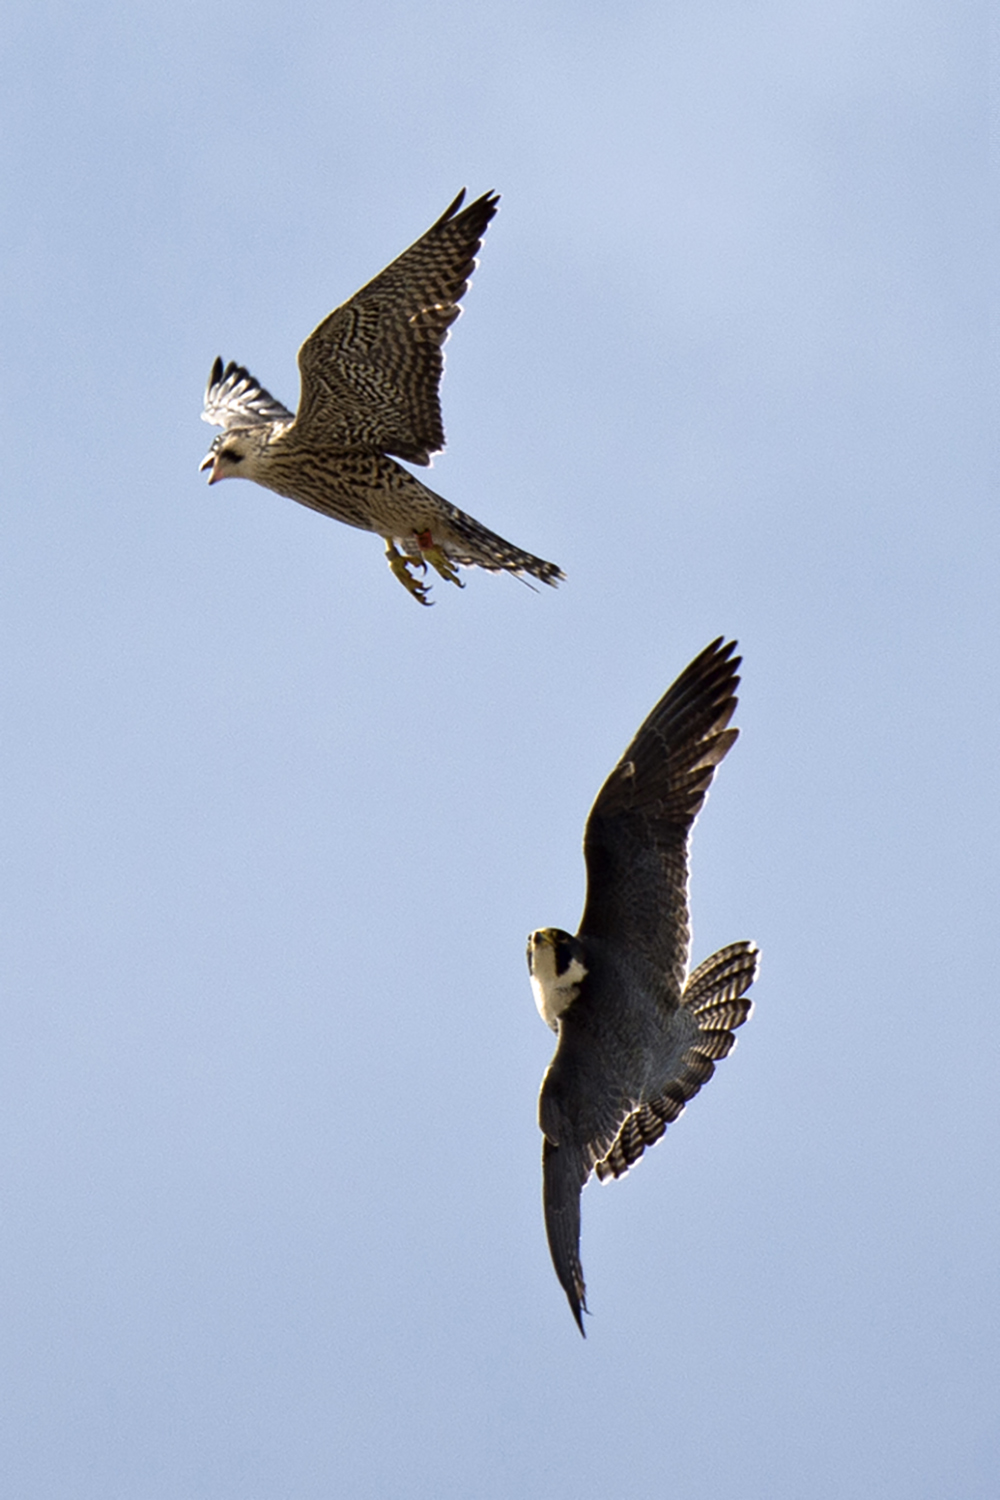 Adult Tiercel with Juvenile Peregrine. Photo by James Sellen.